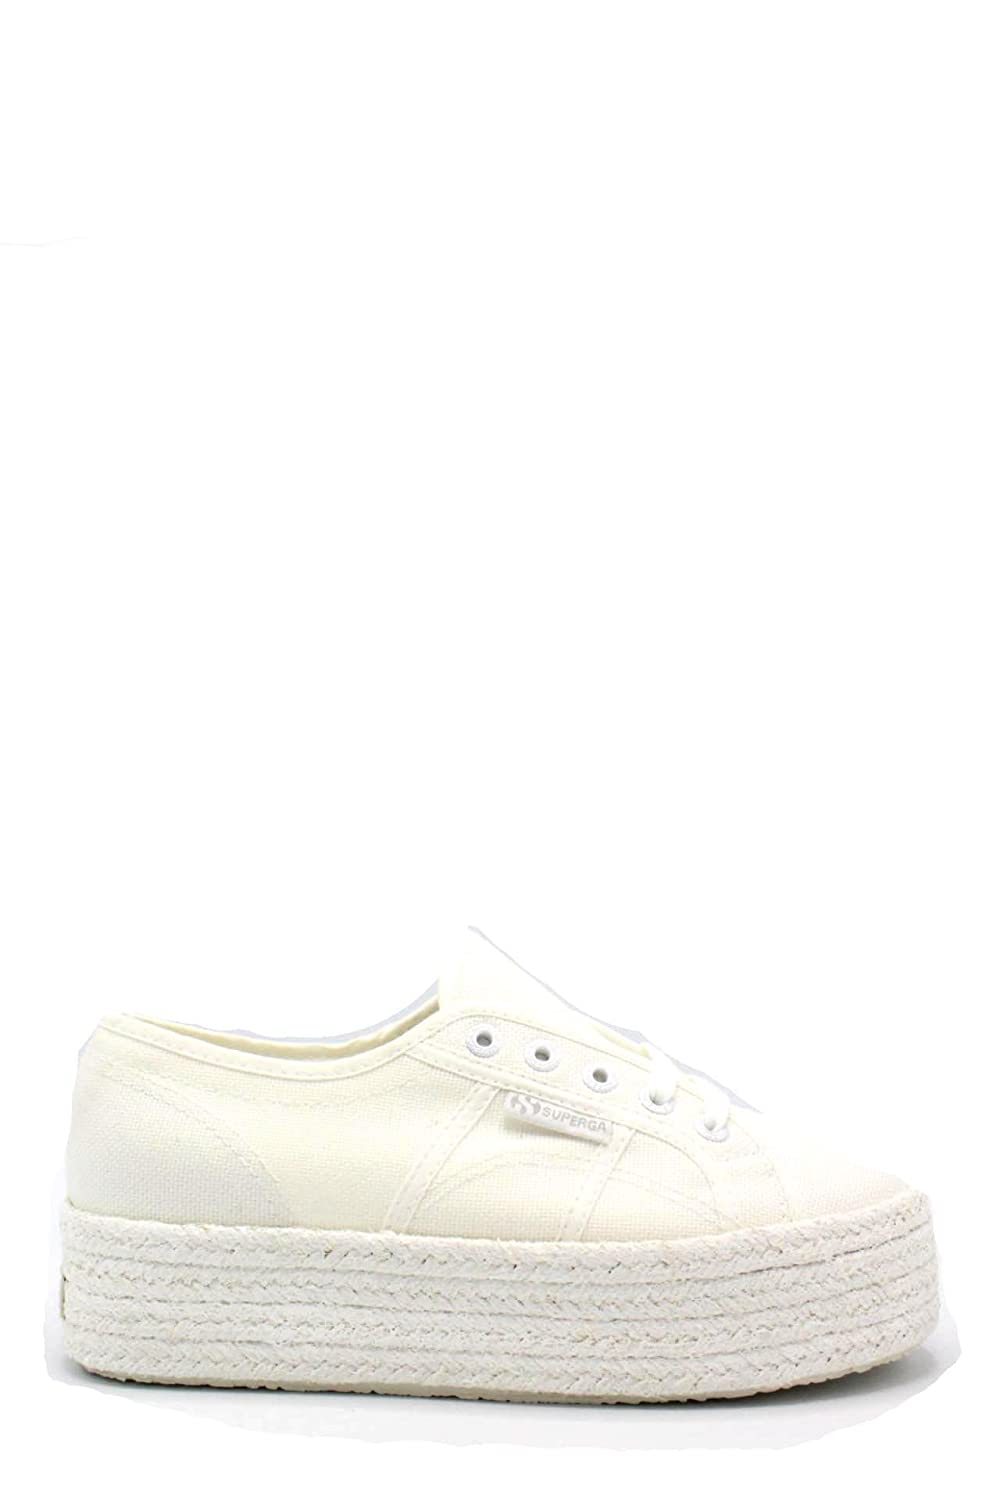 Superga Womens 2790 Cotcoloropew Canvas Trainers 40 EU|White